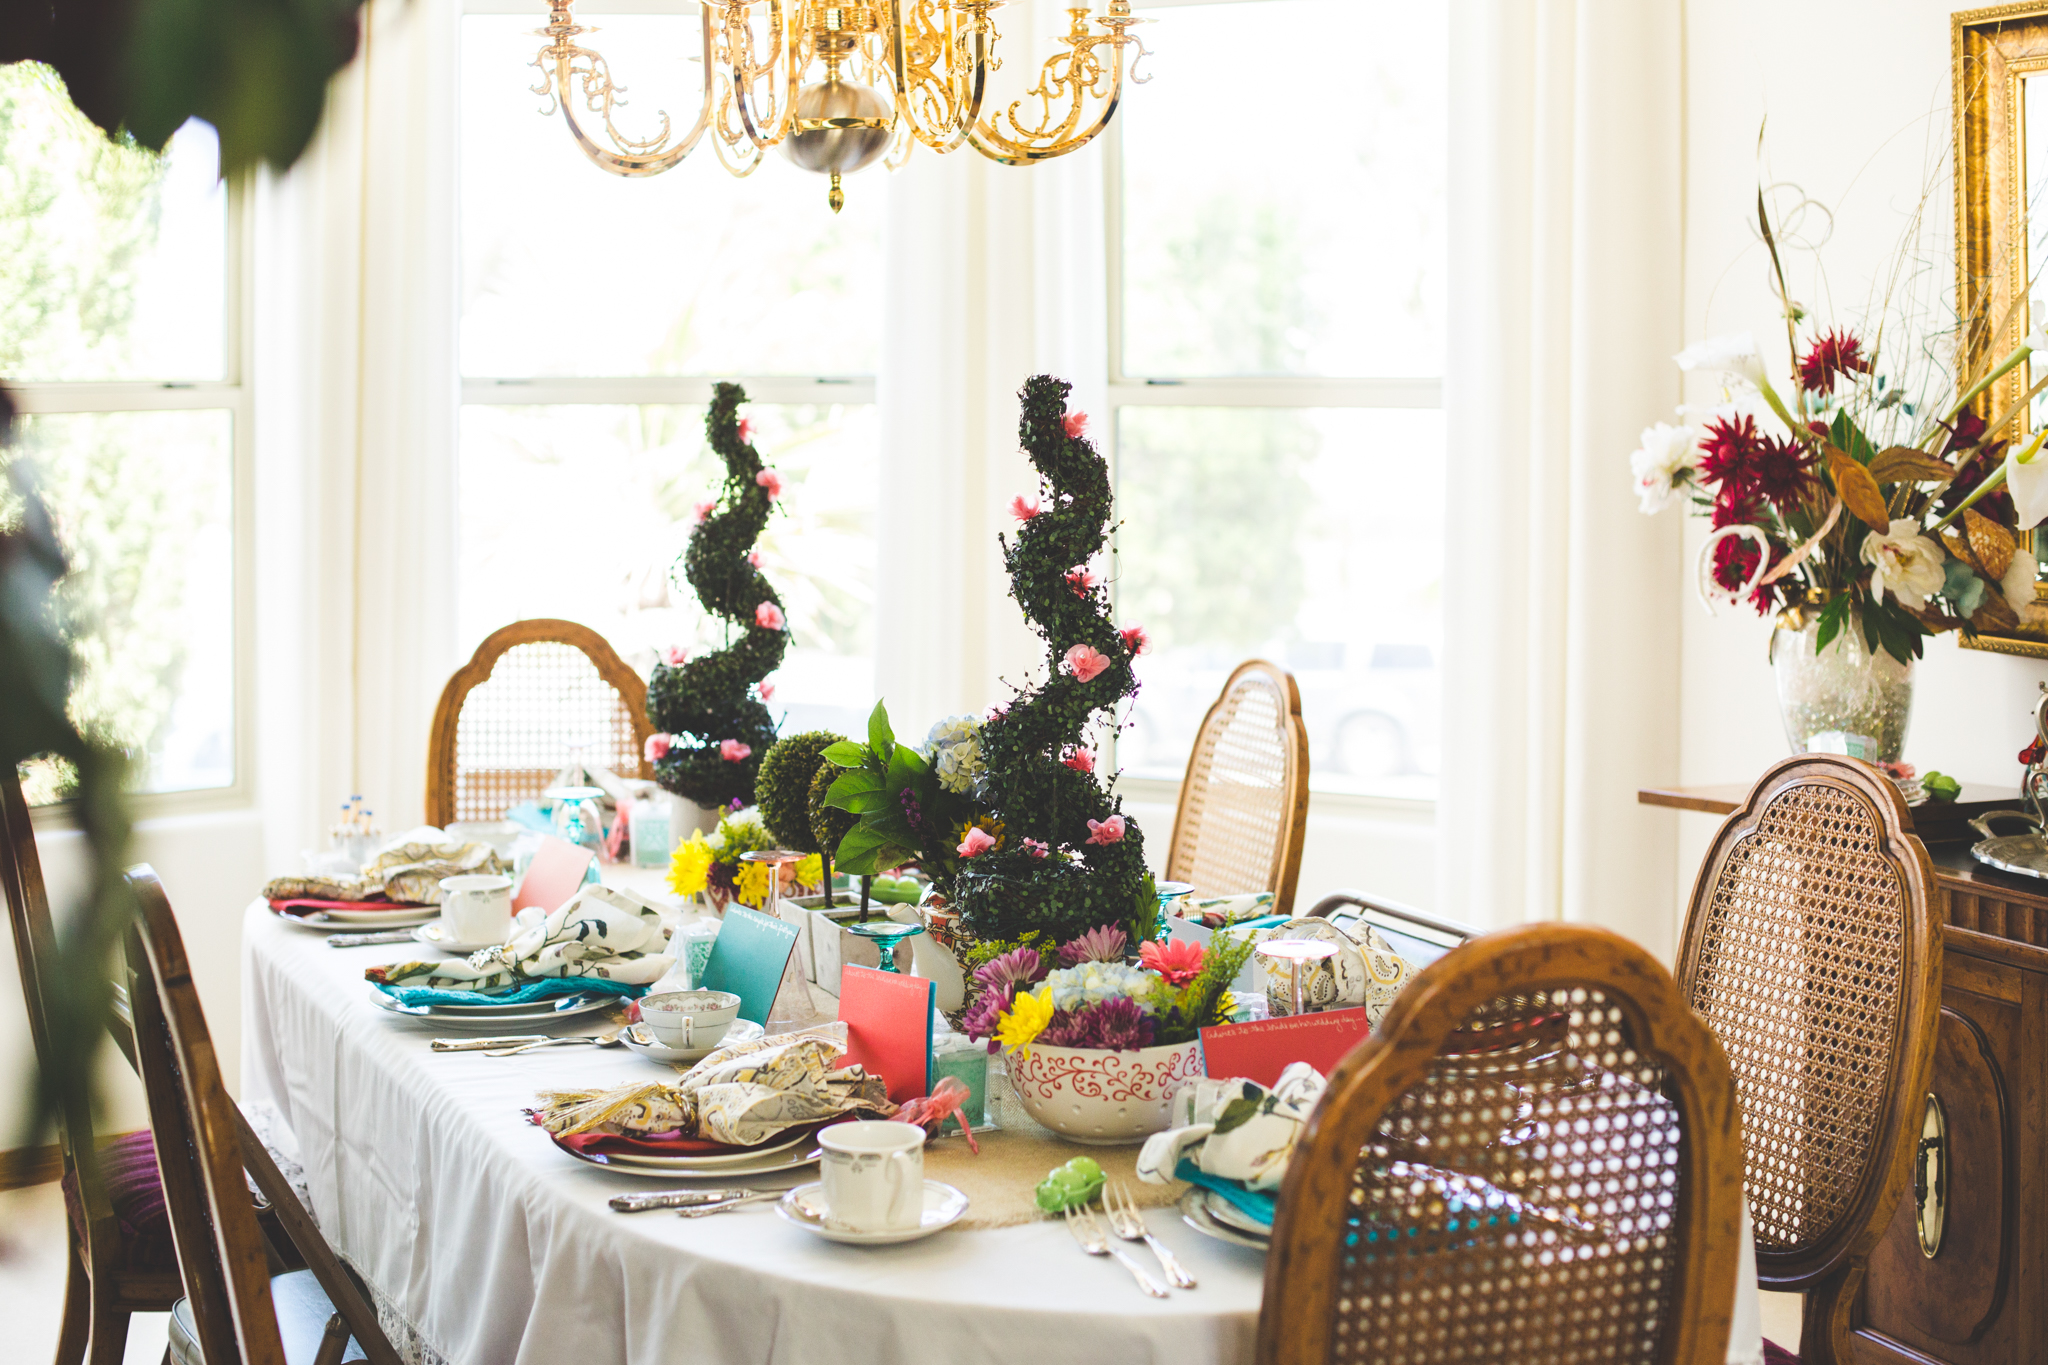 phoeonix-photography-tiffany-bridal-shower-lunch-table